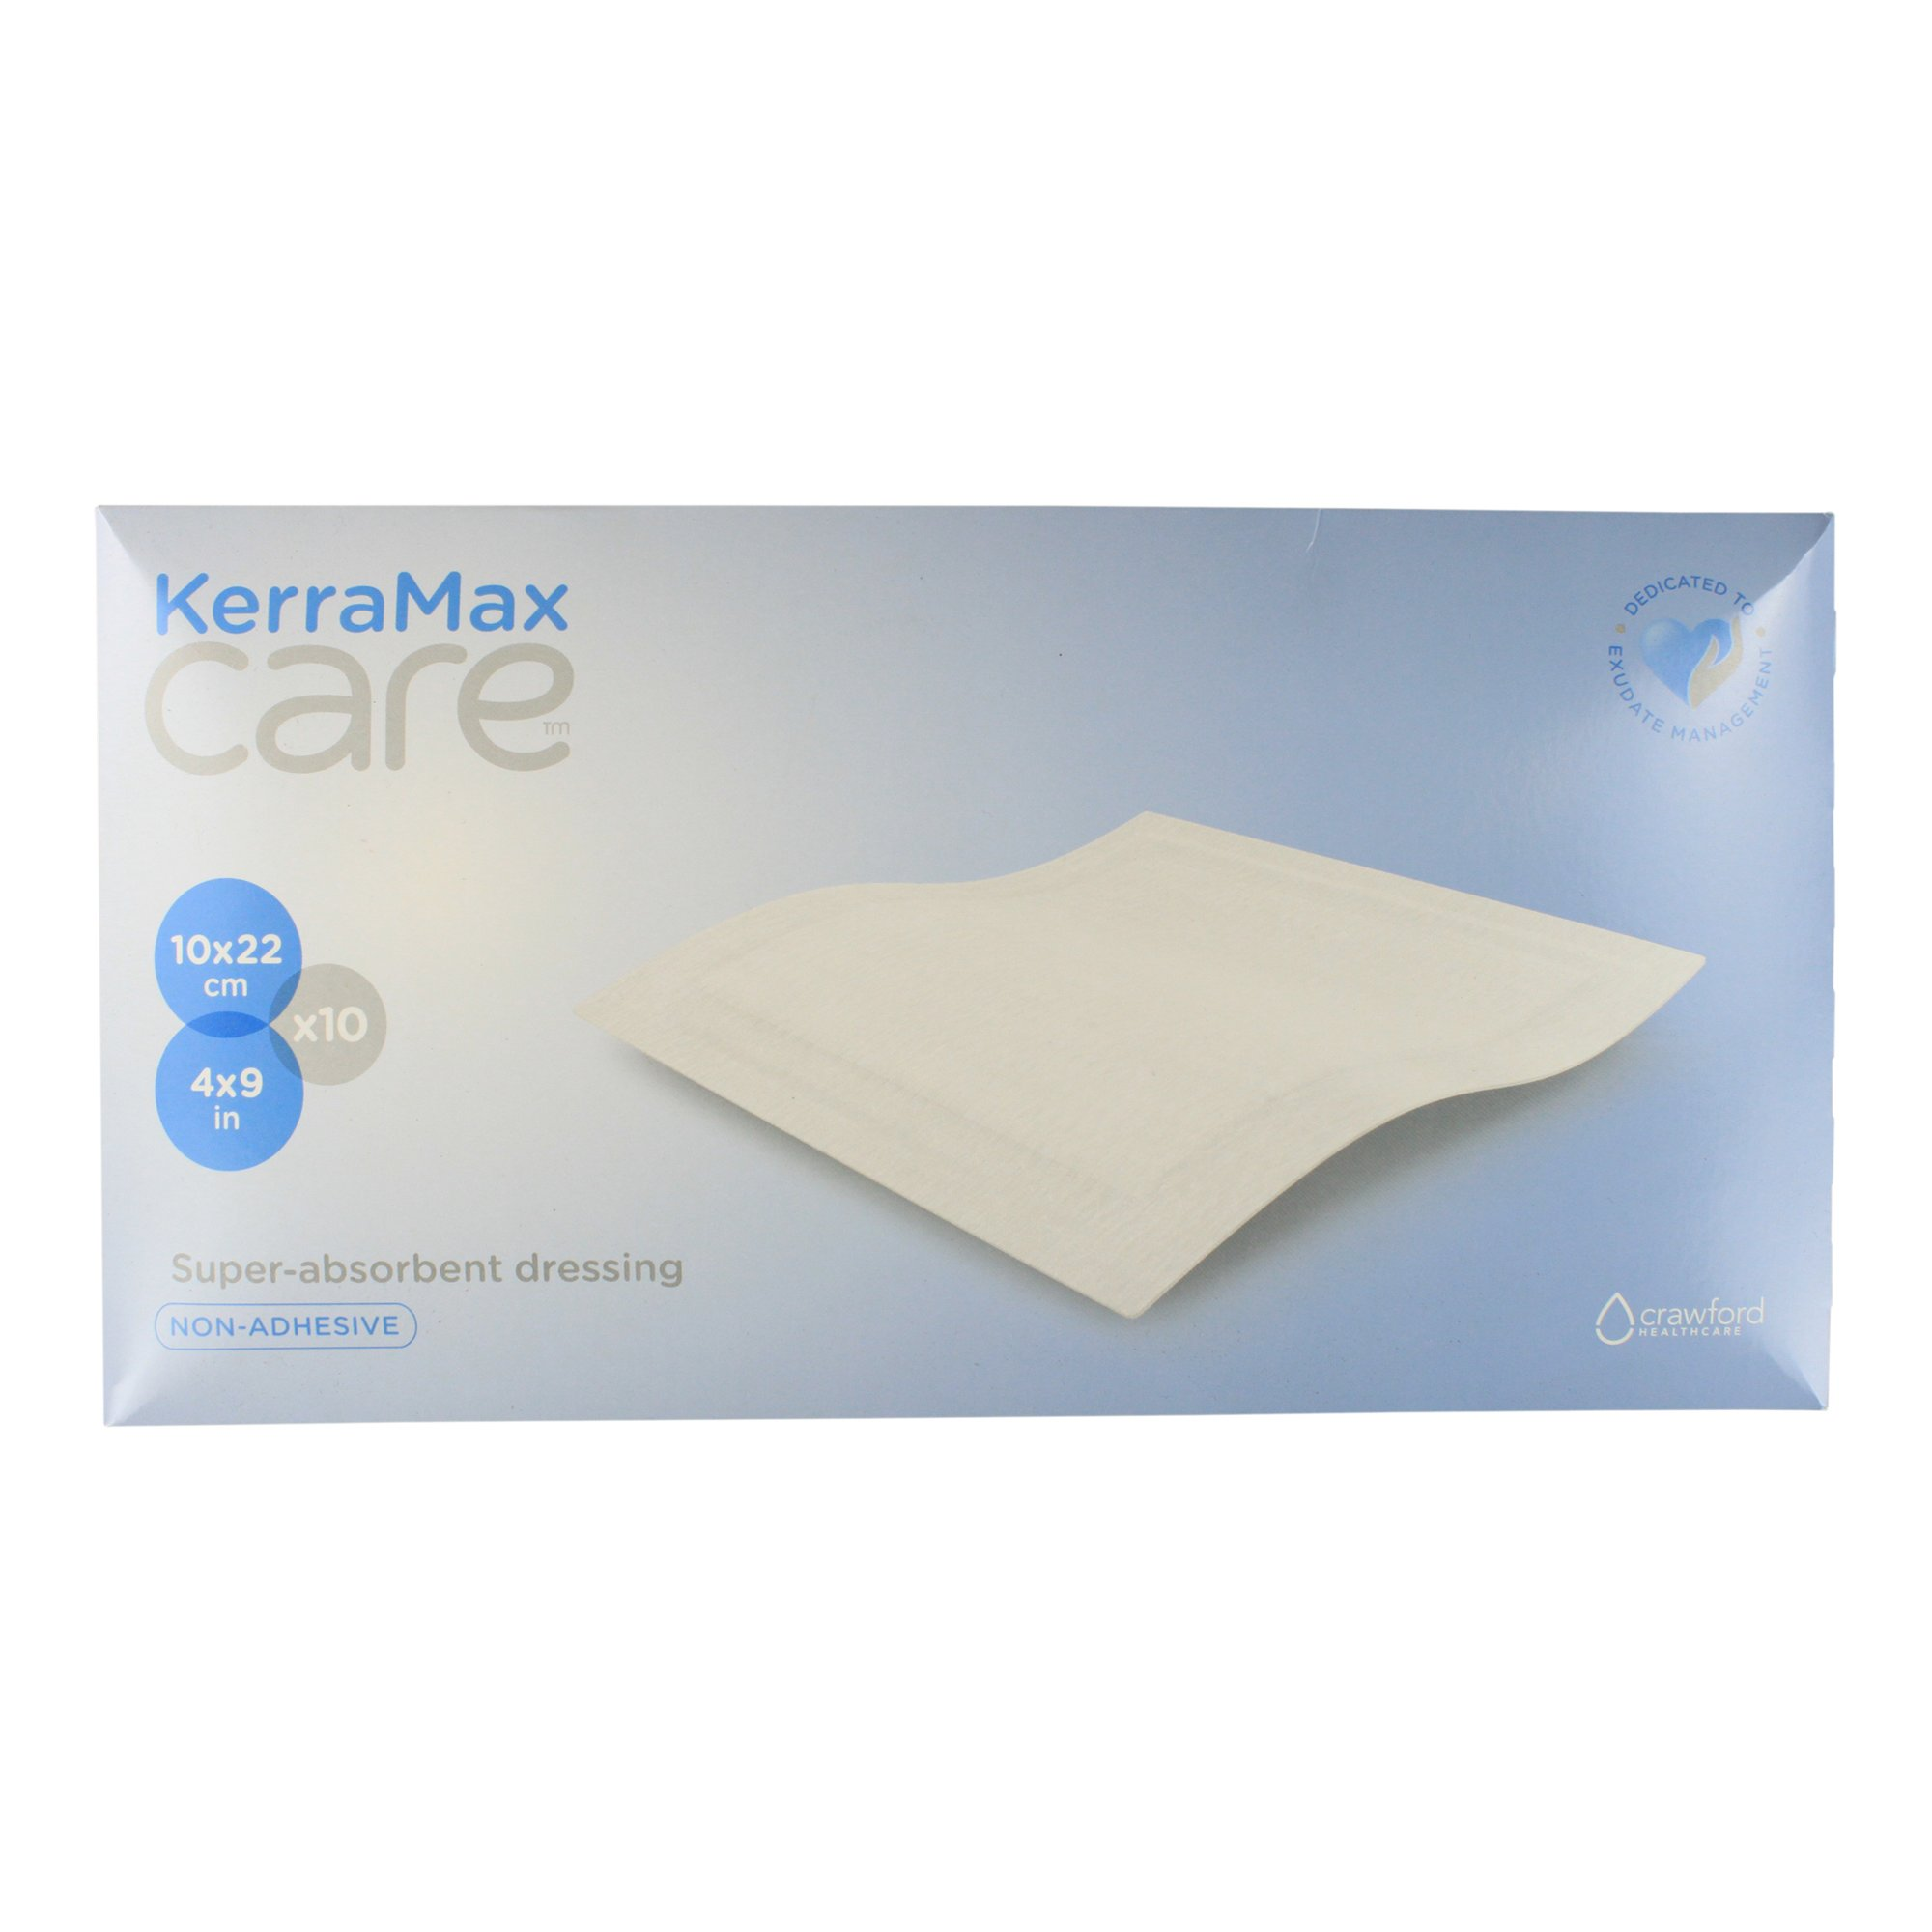 KerraMax Care 4''x9'' Super Absorbent Wound Dressing (PRD500-120) – Absorbs Exudate and Isolates it, Preventing Leaks or Drips for Improved Patient Comfort and Wound Care Treatment (Box of 10)